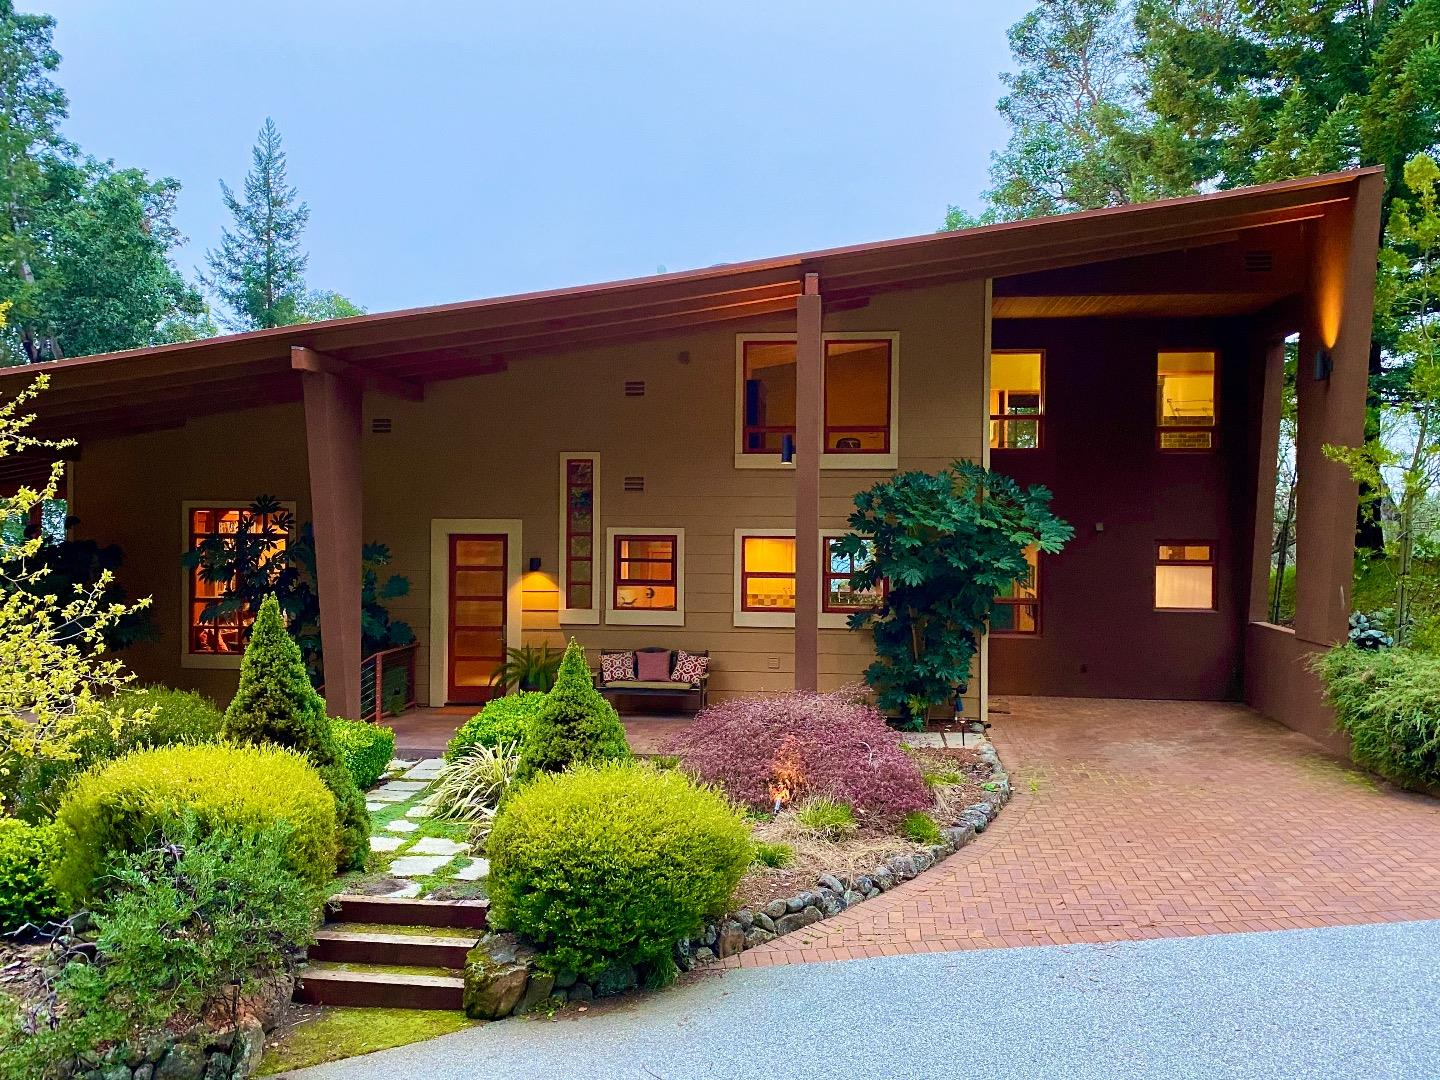 "Get out of the city but remain close in this luxury private light-filled ridgetop retreat on gated 48-acre parcel. Enjoy spectacular views over wooded canyons to the Monterey Bay and beyond. Relax in the open-plan, modern custom home designed in 2008 for artist couple. Unique in the Mountains. Two to four bedrooms with chefs kitchen overlooking patio and magnificent views. Premium tasteful finish throughout. Separate studio/guest suite with half bath. Hi-Speed internet Ideal for telecommuters who value privacy, natural beauty and quiet. South facing TPZ parcel with lots of usable land. Suitable for small vineyard, orchards. Strong, deep well with undiminished volume through dry years. 20 minutes from Los Gatos High School and stores. Or easy to home school without neighborhood distractions. Buyers must be comfortable with winding mountain roads. Owner willing to carry first mortgage. Click links to 3 different video tours. Families see our video about""distance leaning in the mountains"""